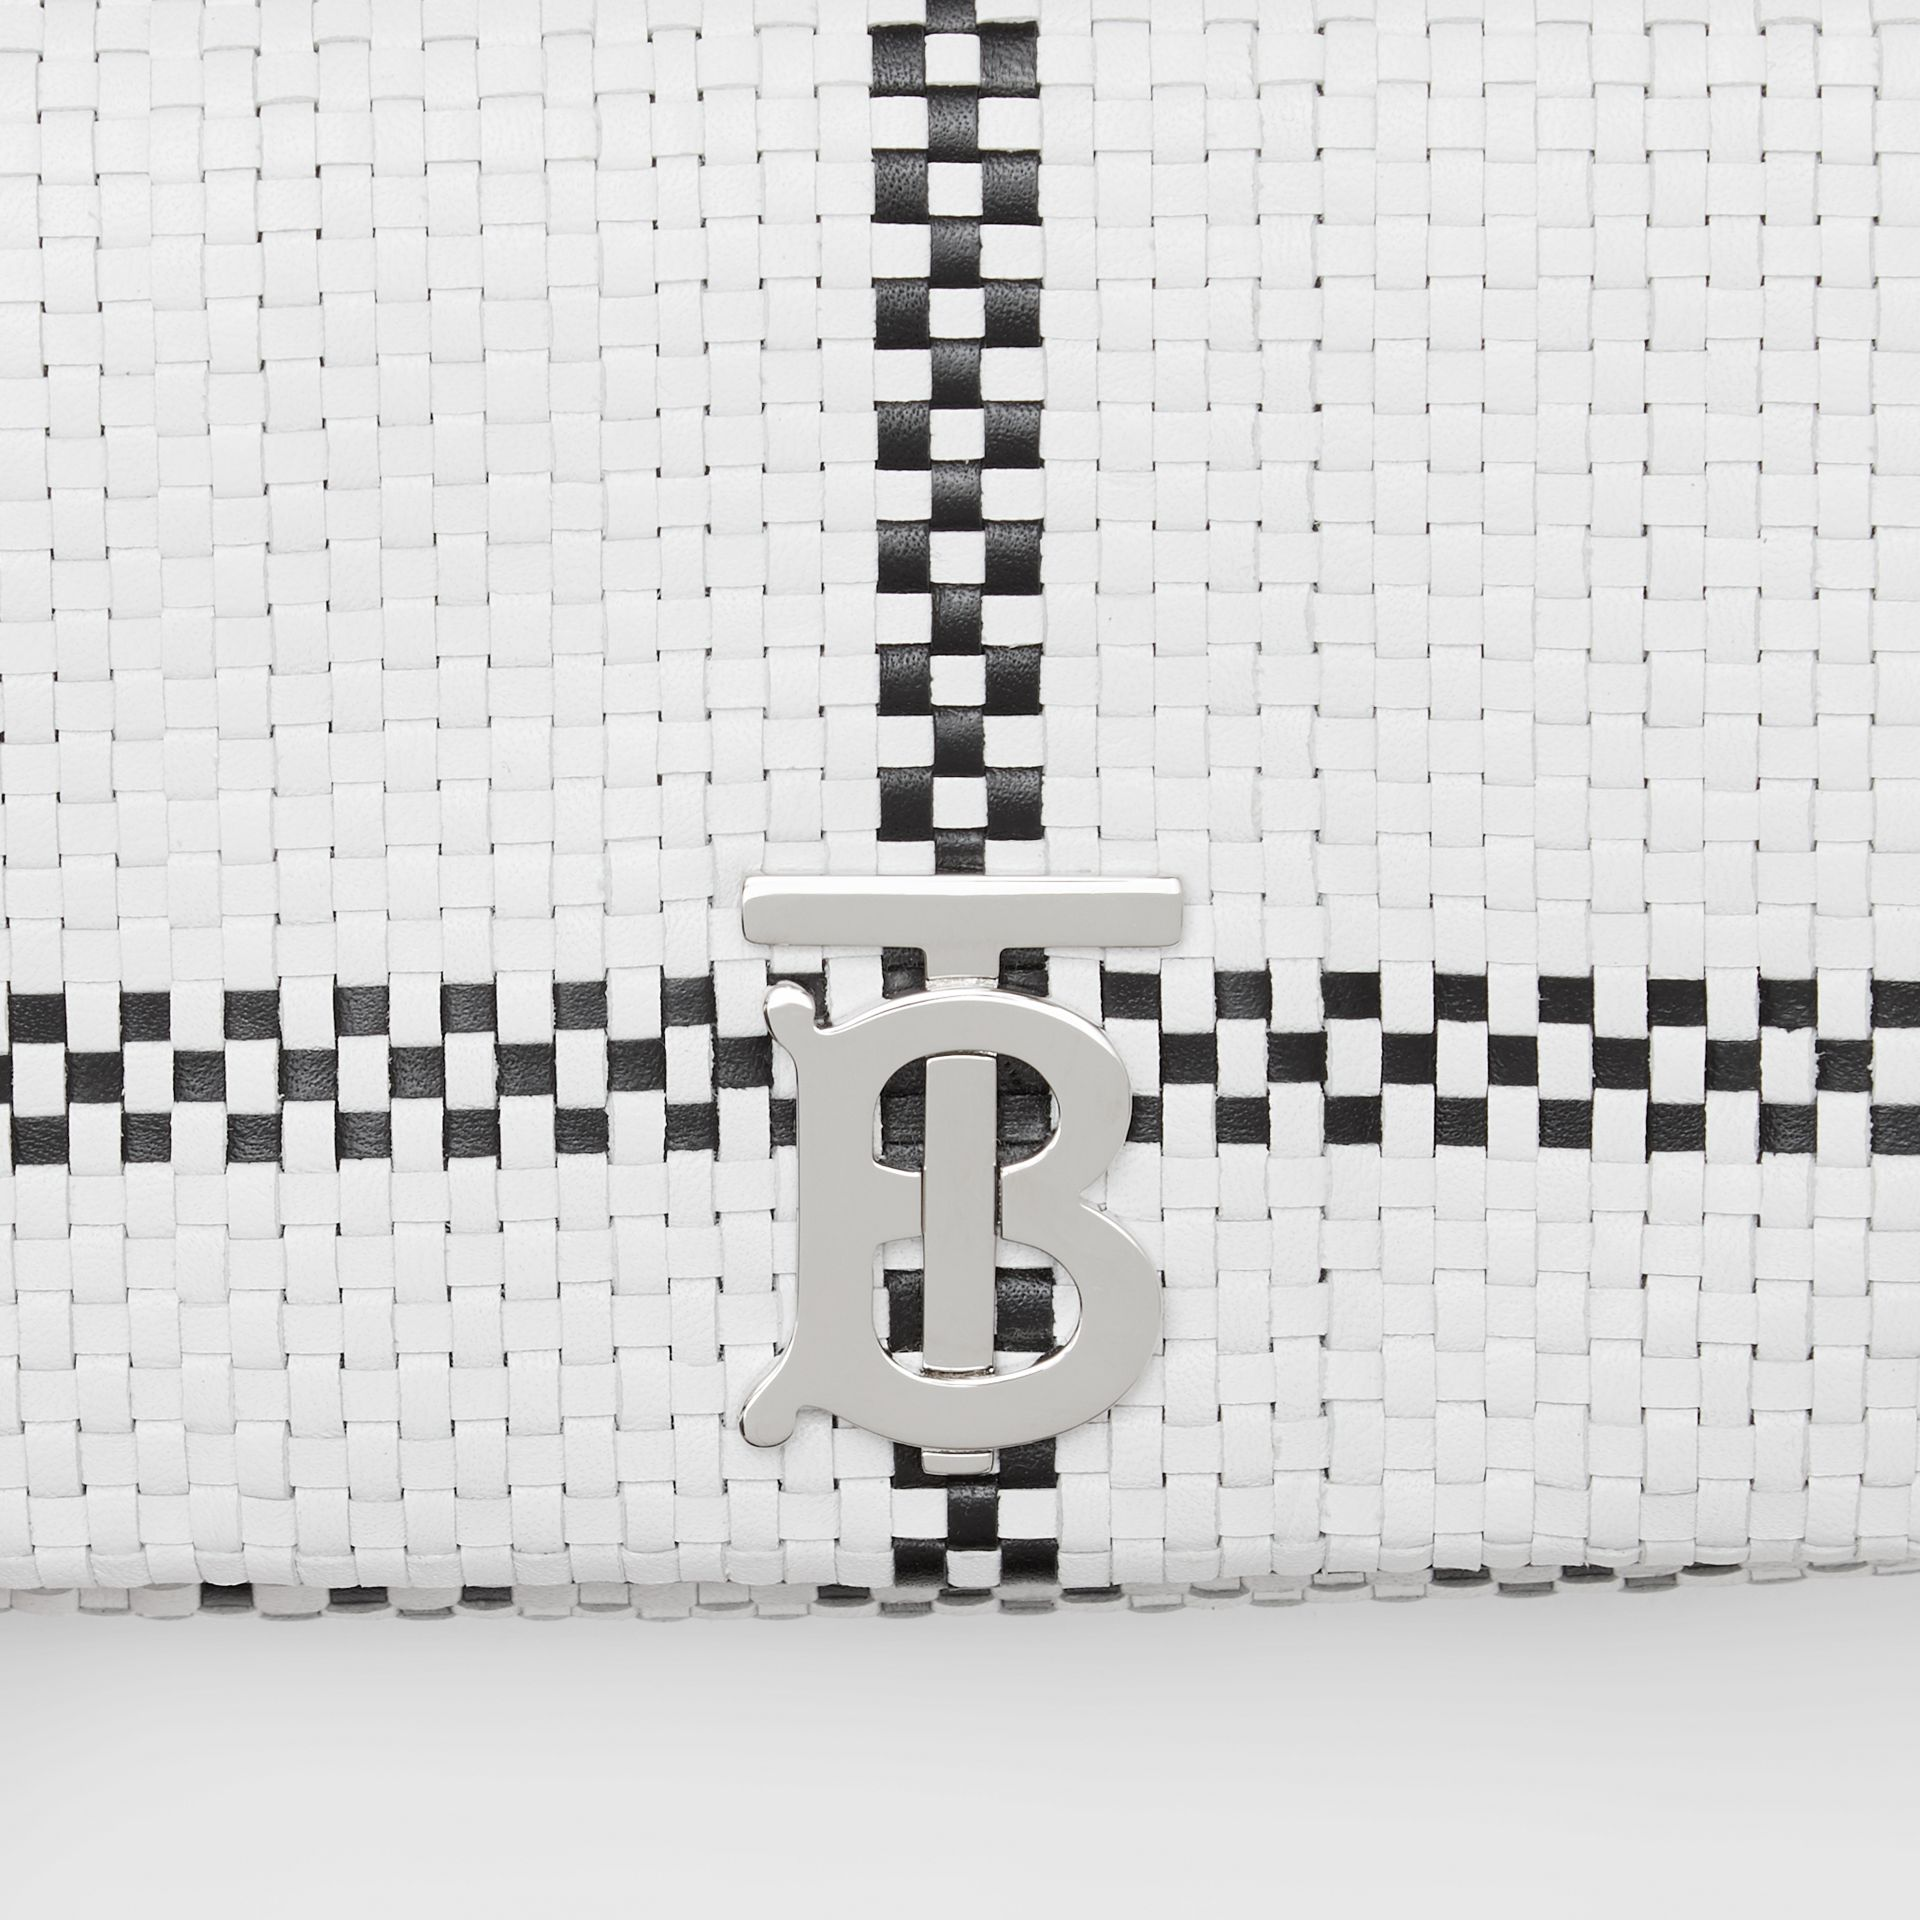 Mini Latticed Leather Lola Bag in Black/white - Women | Burberry - gallery image 1